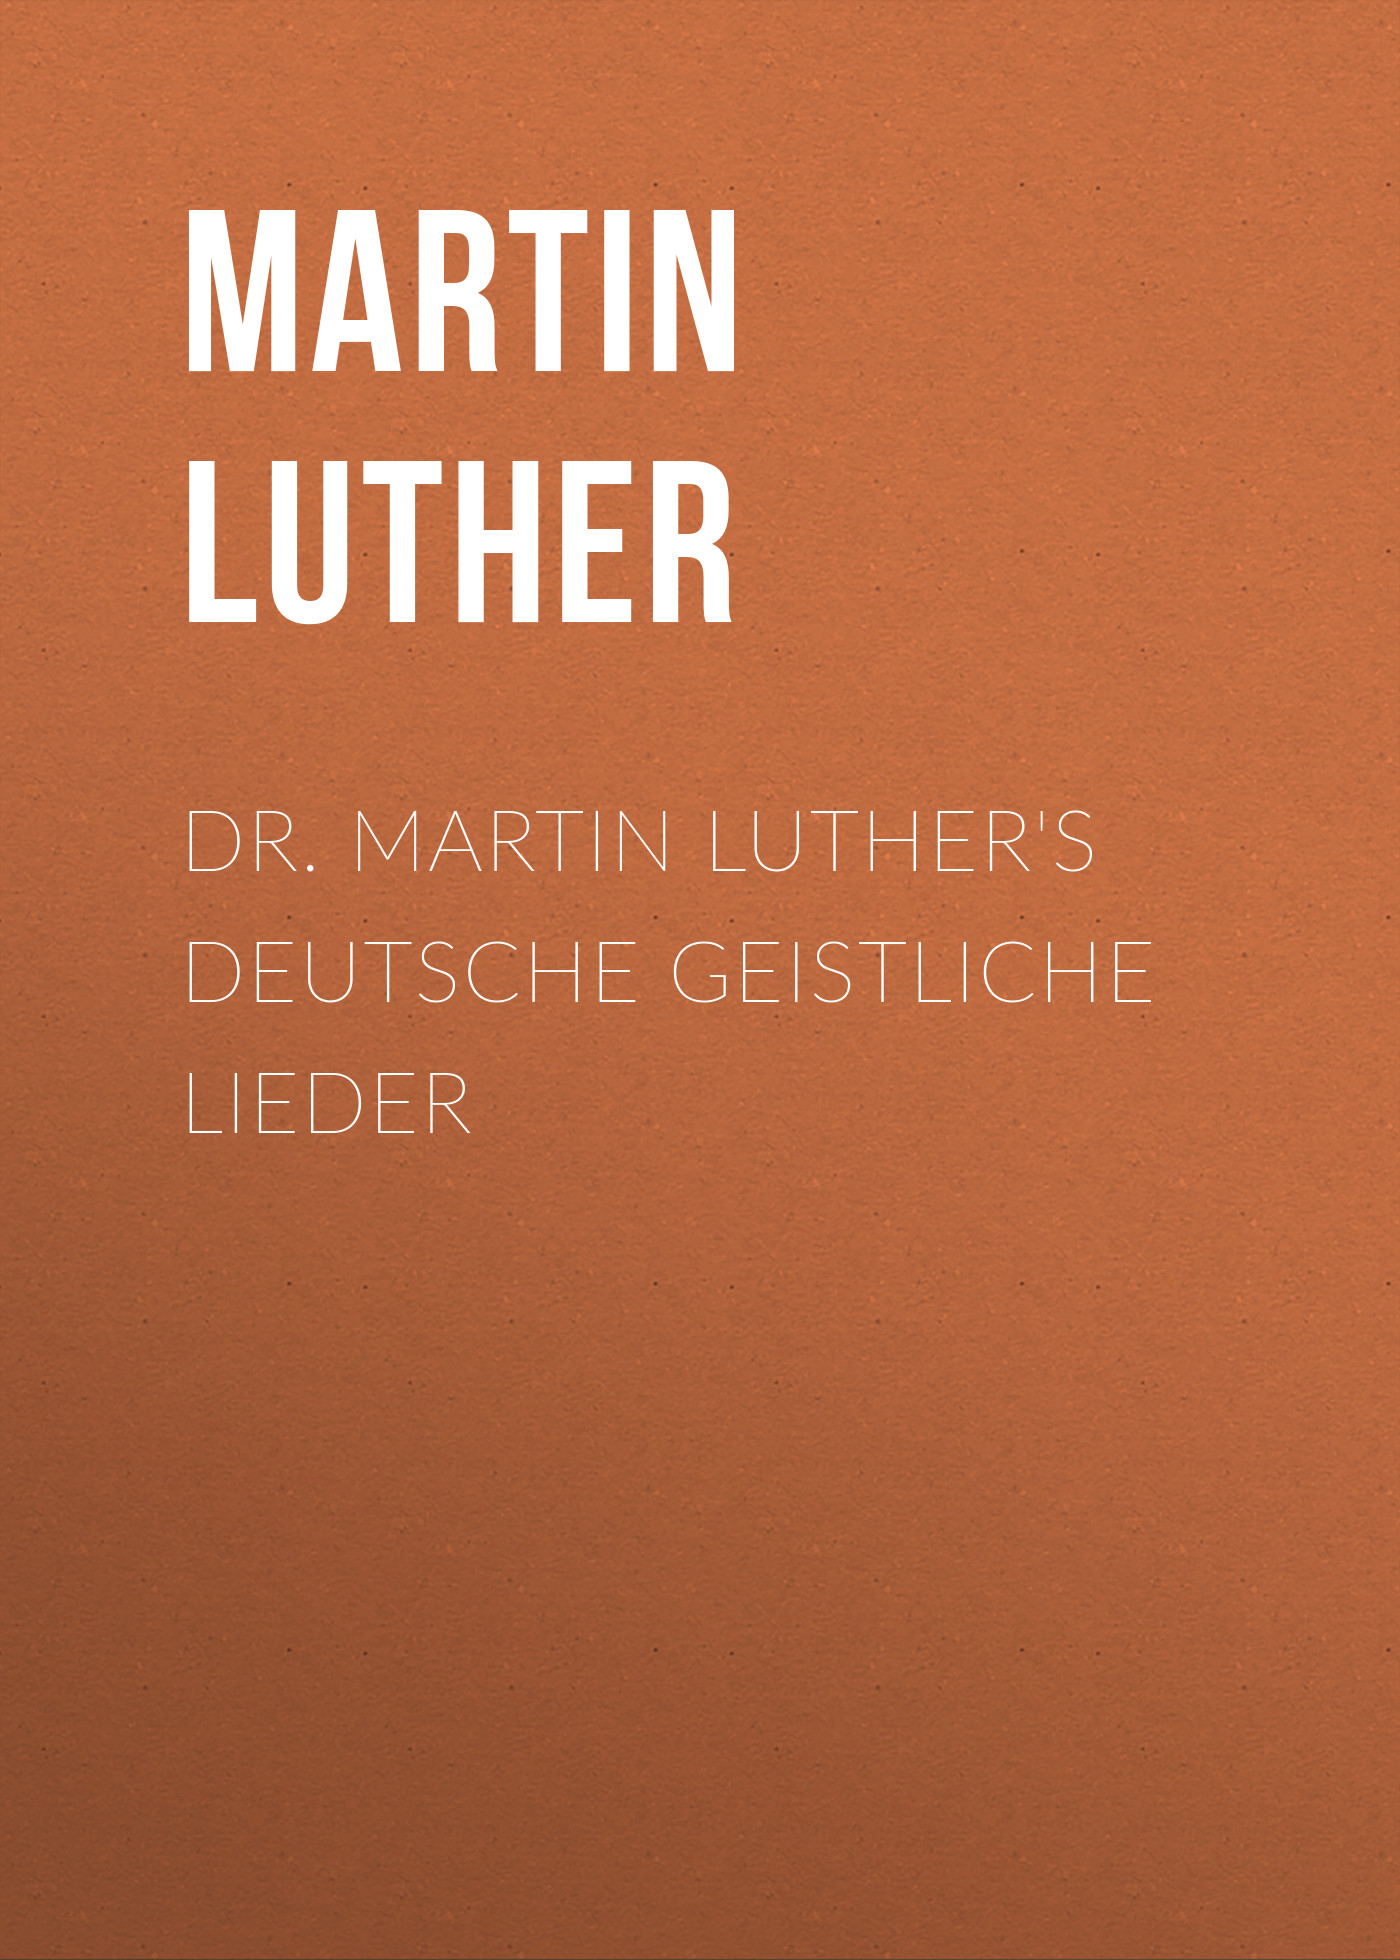 Martin Luther Dr. Martin Luther's Deutsche Geistliche Lieder m luther luther s letters to women